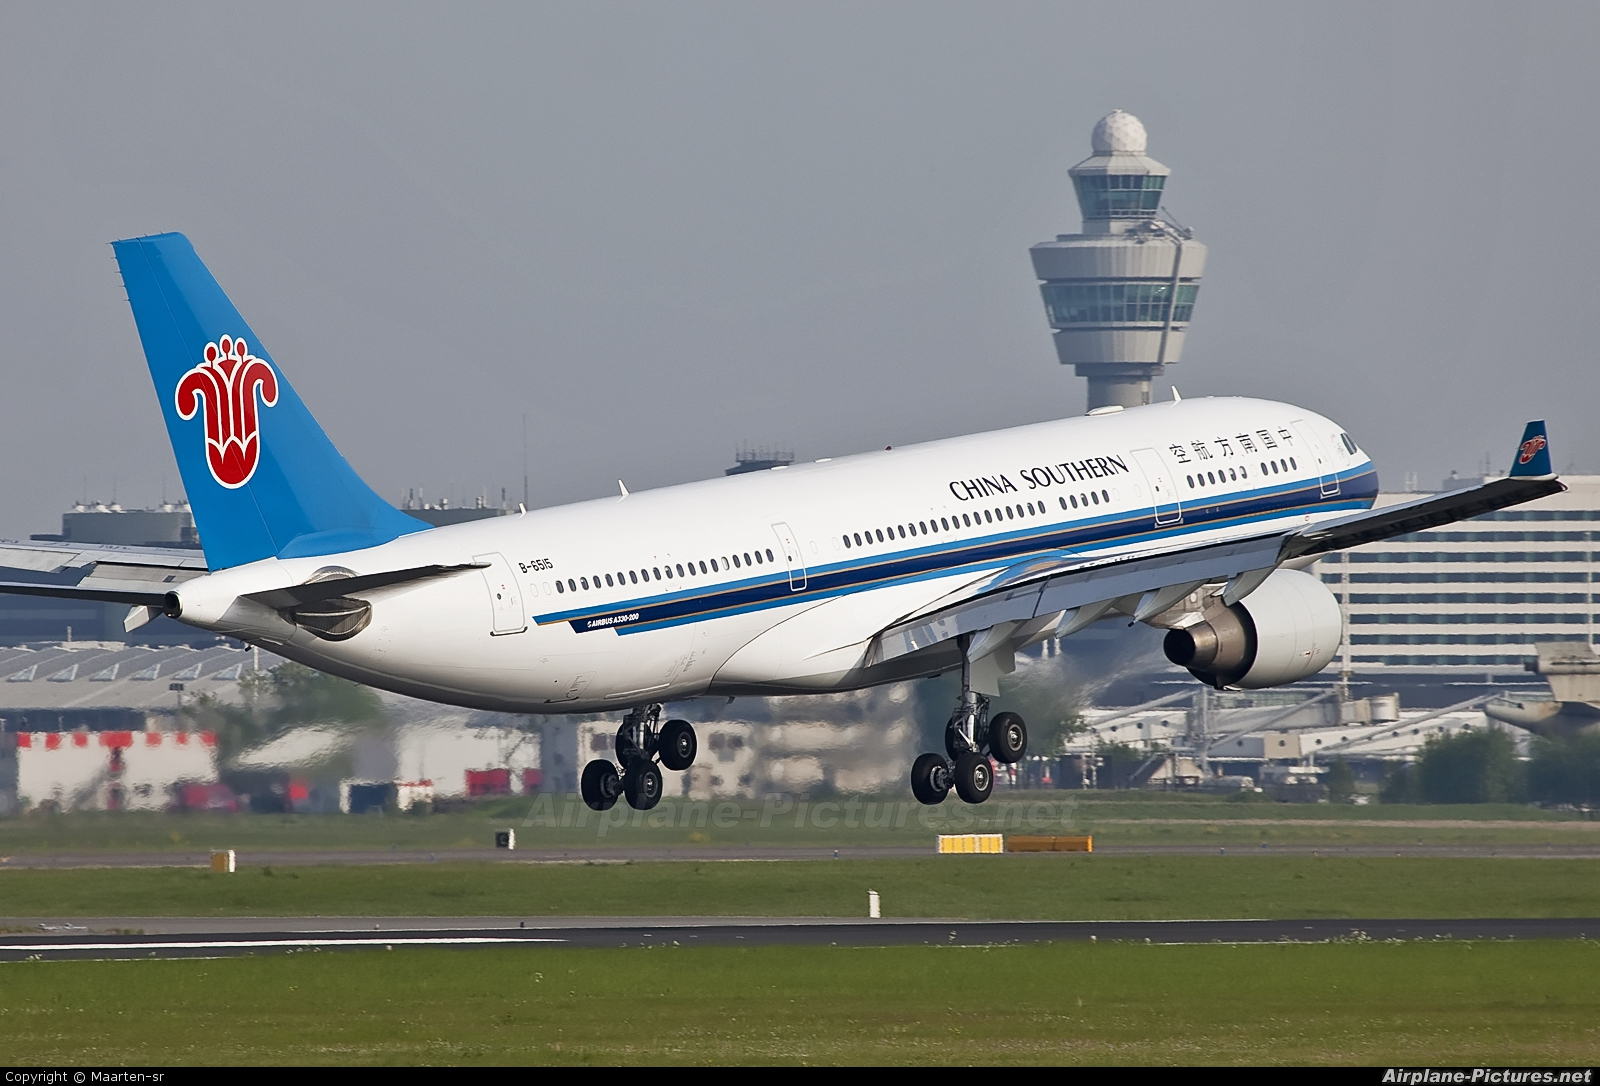 China Southern Airlines B-6515 aircraft at Amsterdam - Schiphol